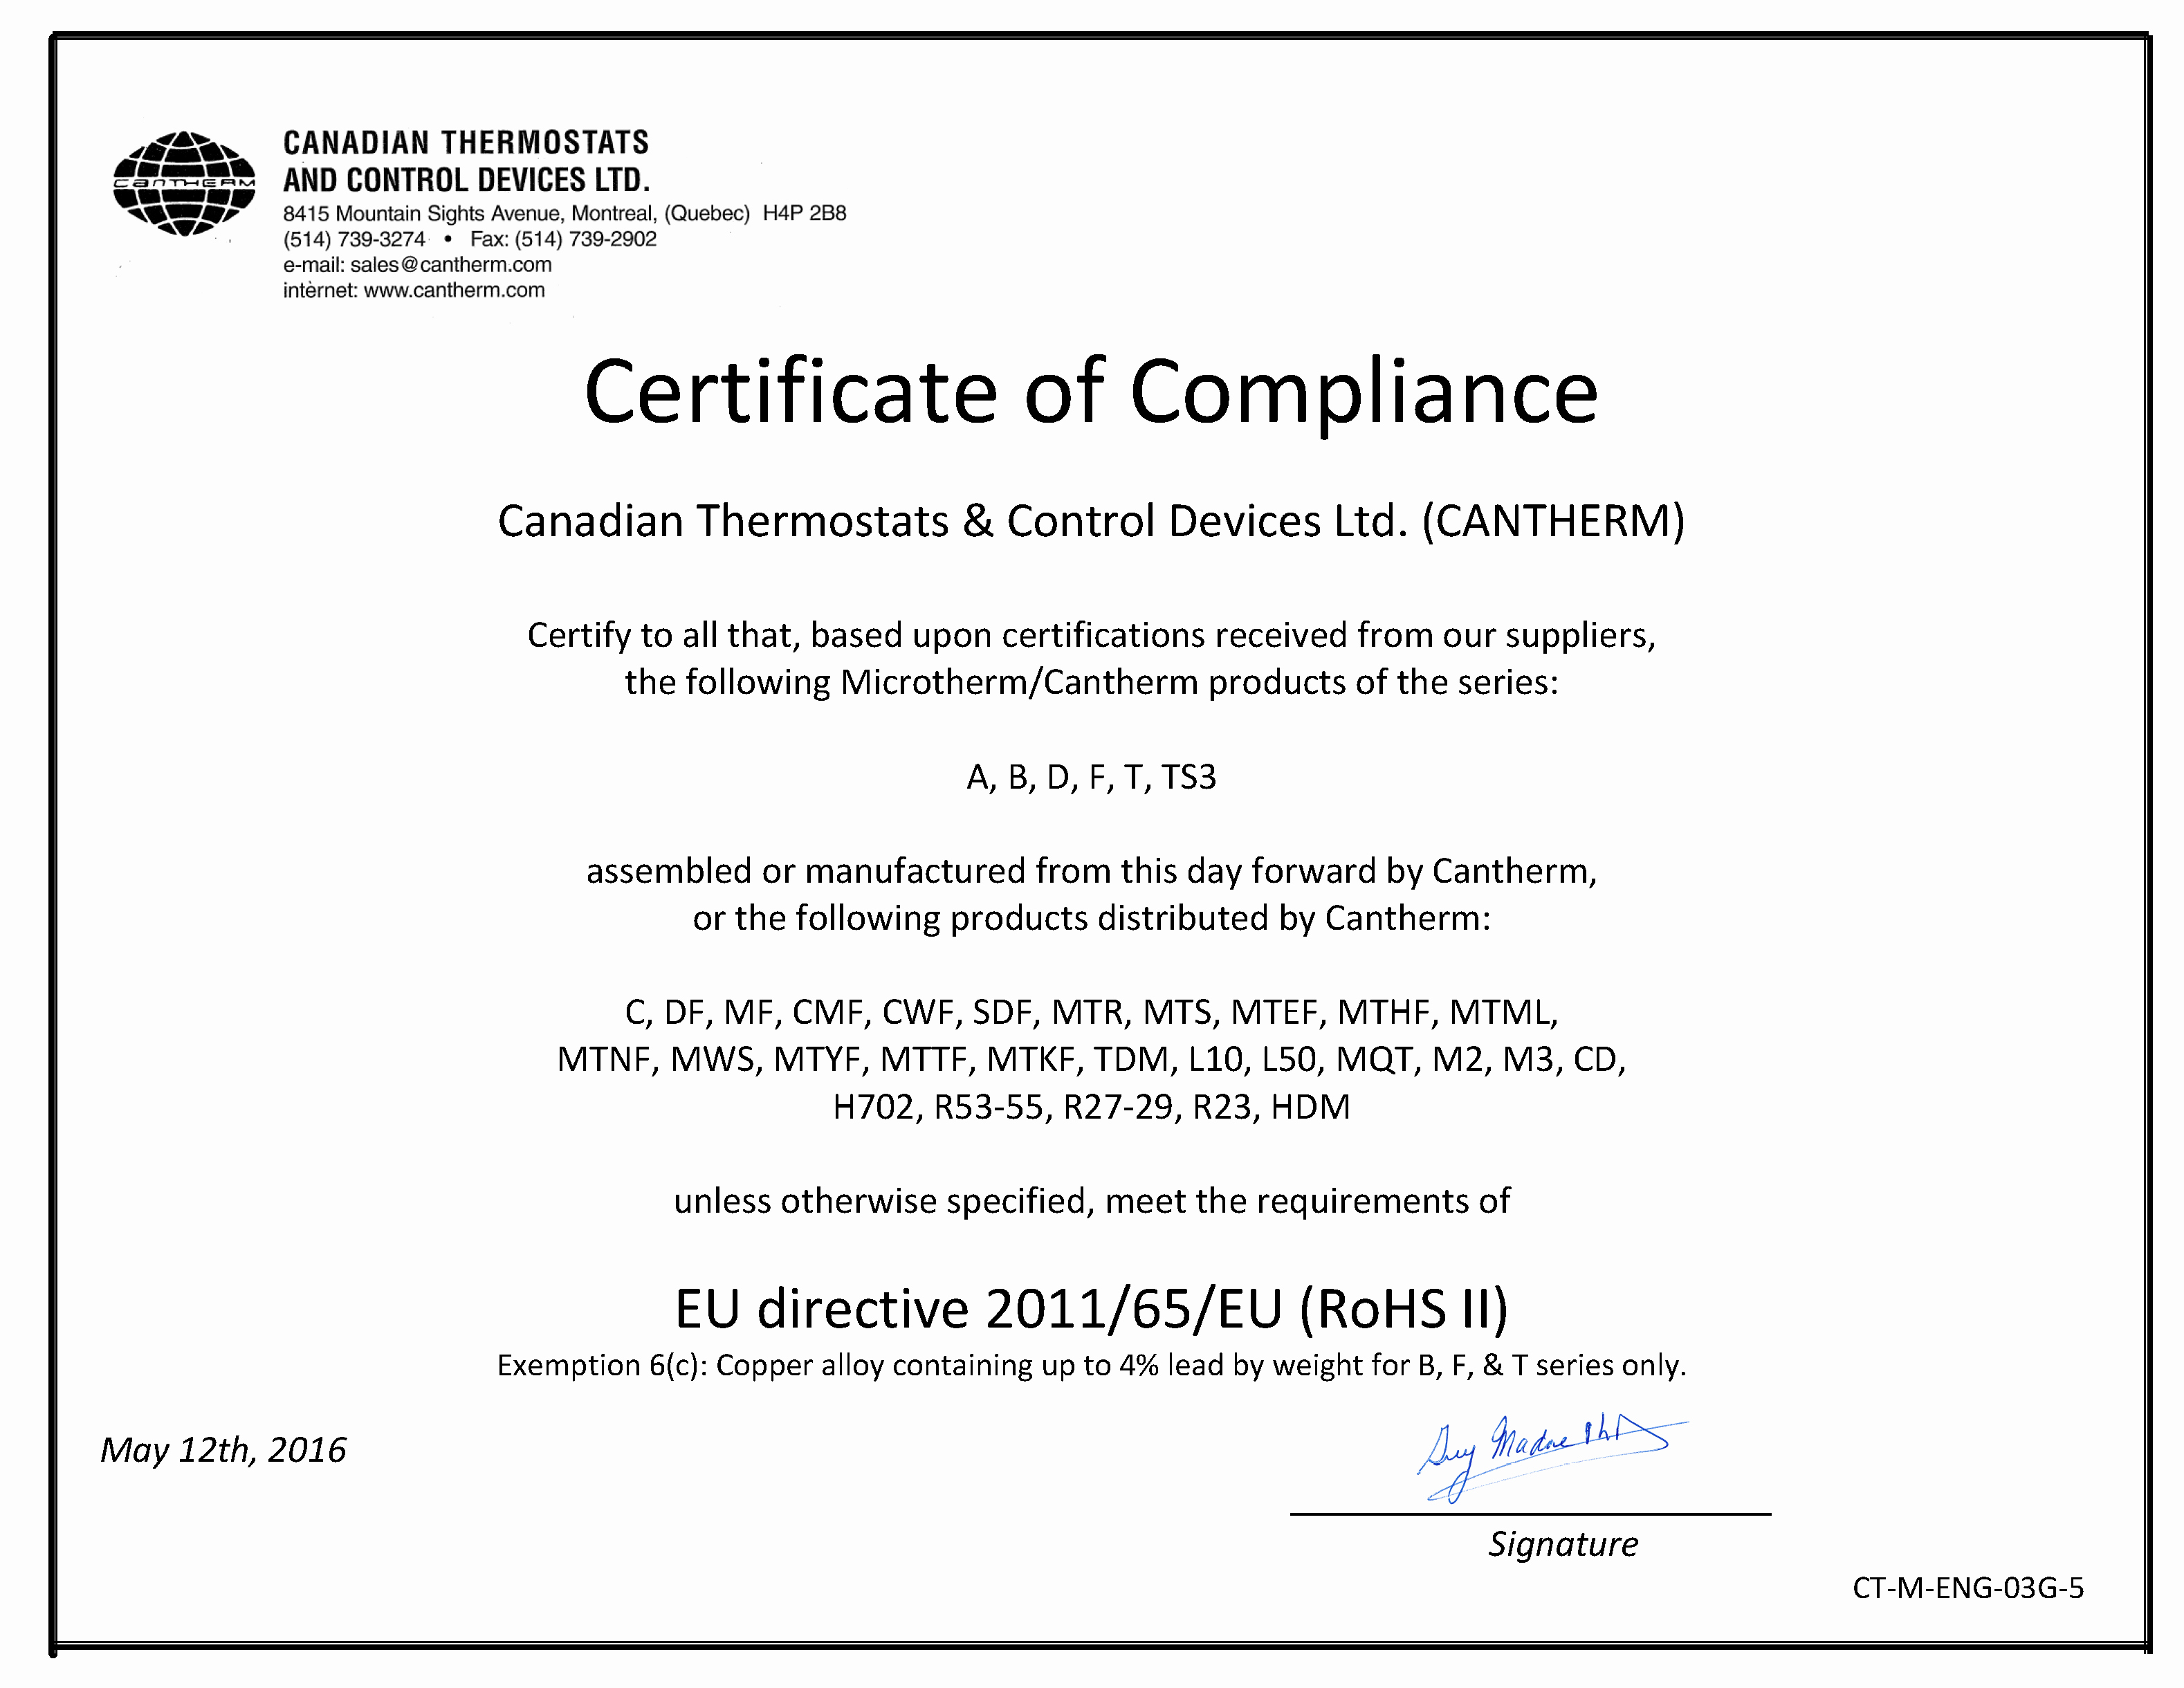 Certificate Of Compliance Template Lovely Rohs Pliance – Cantherm Cantherm – Canadian thermostats & Control Devices Ltd Cantherm